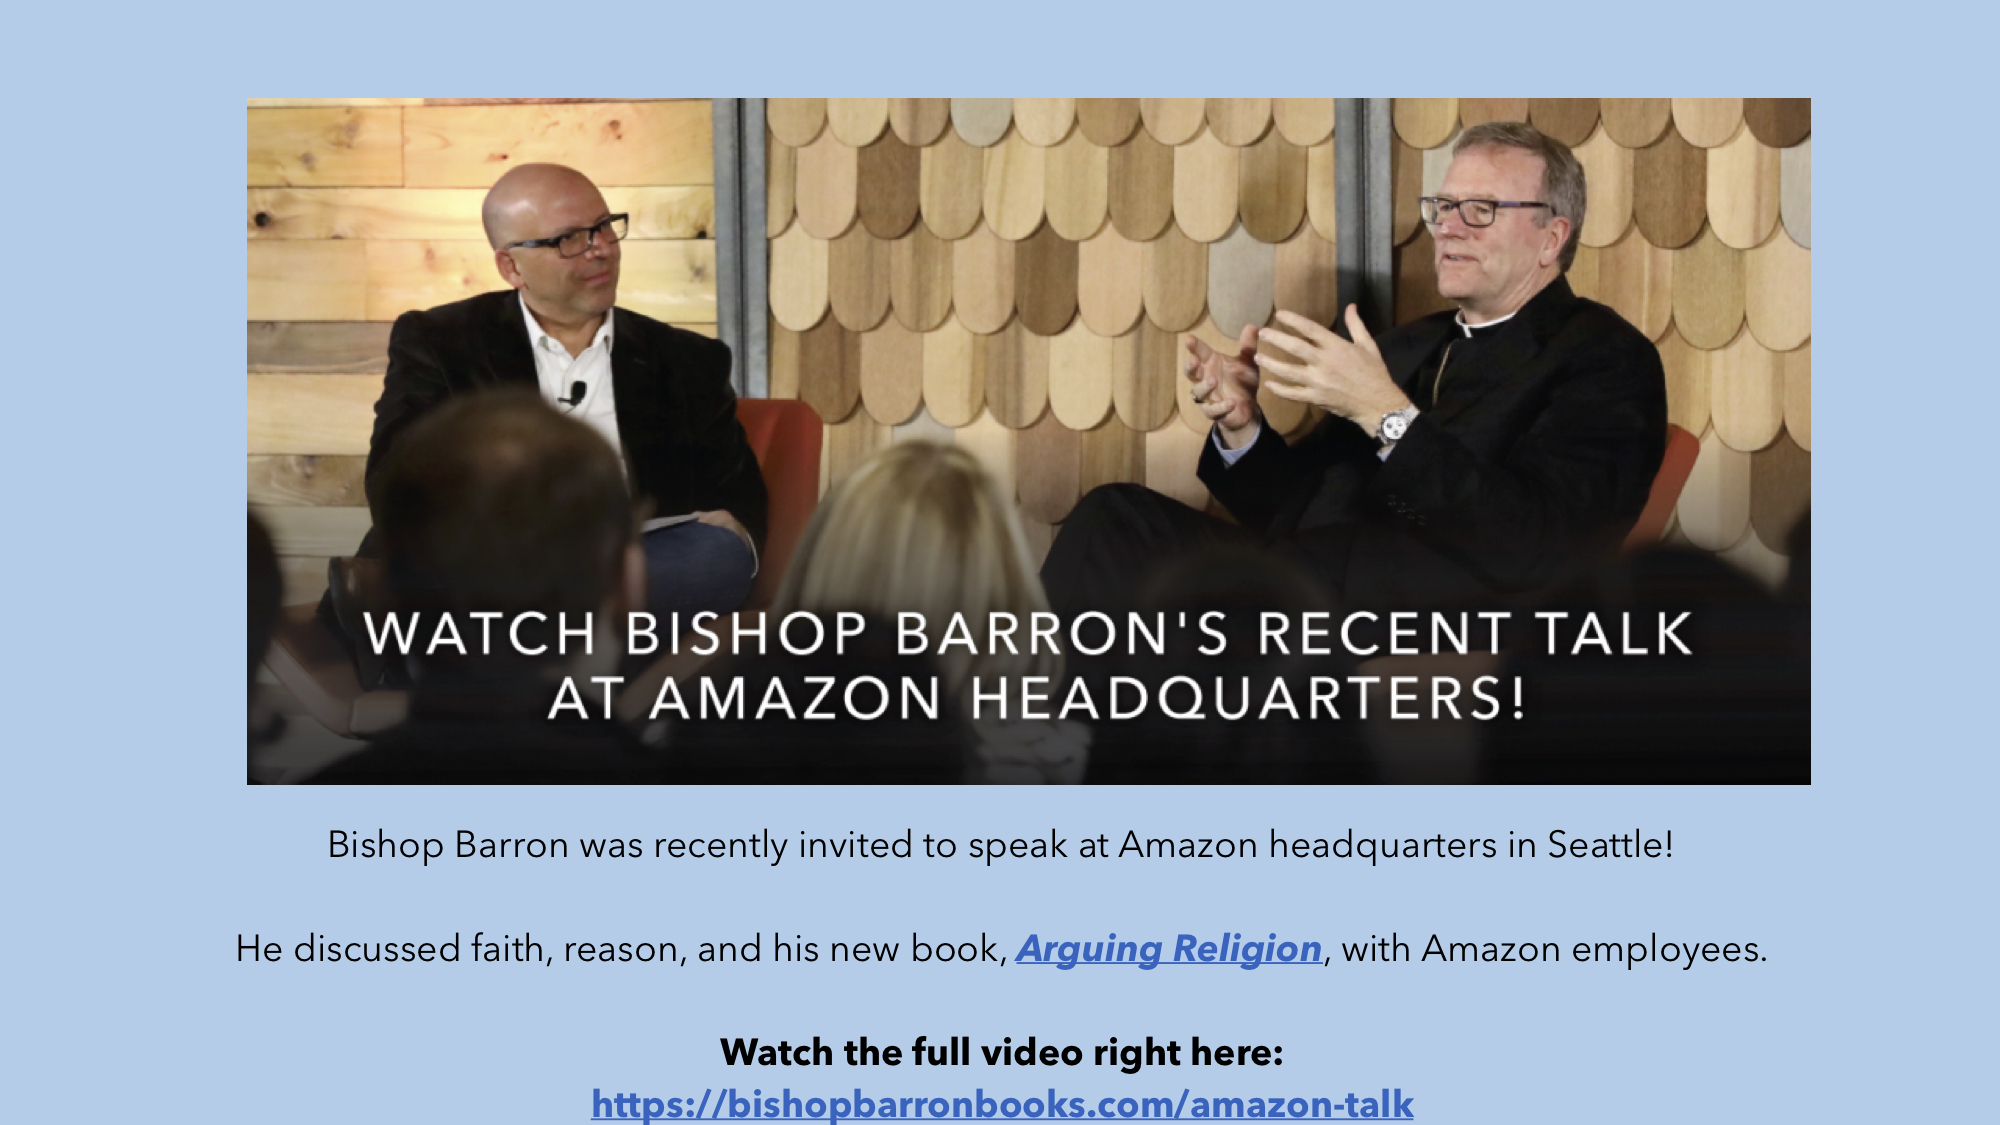 Bishop Barron - Arguing Religion Talk